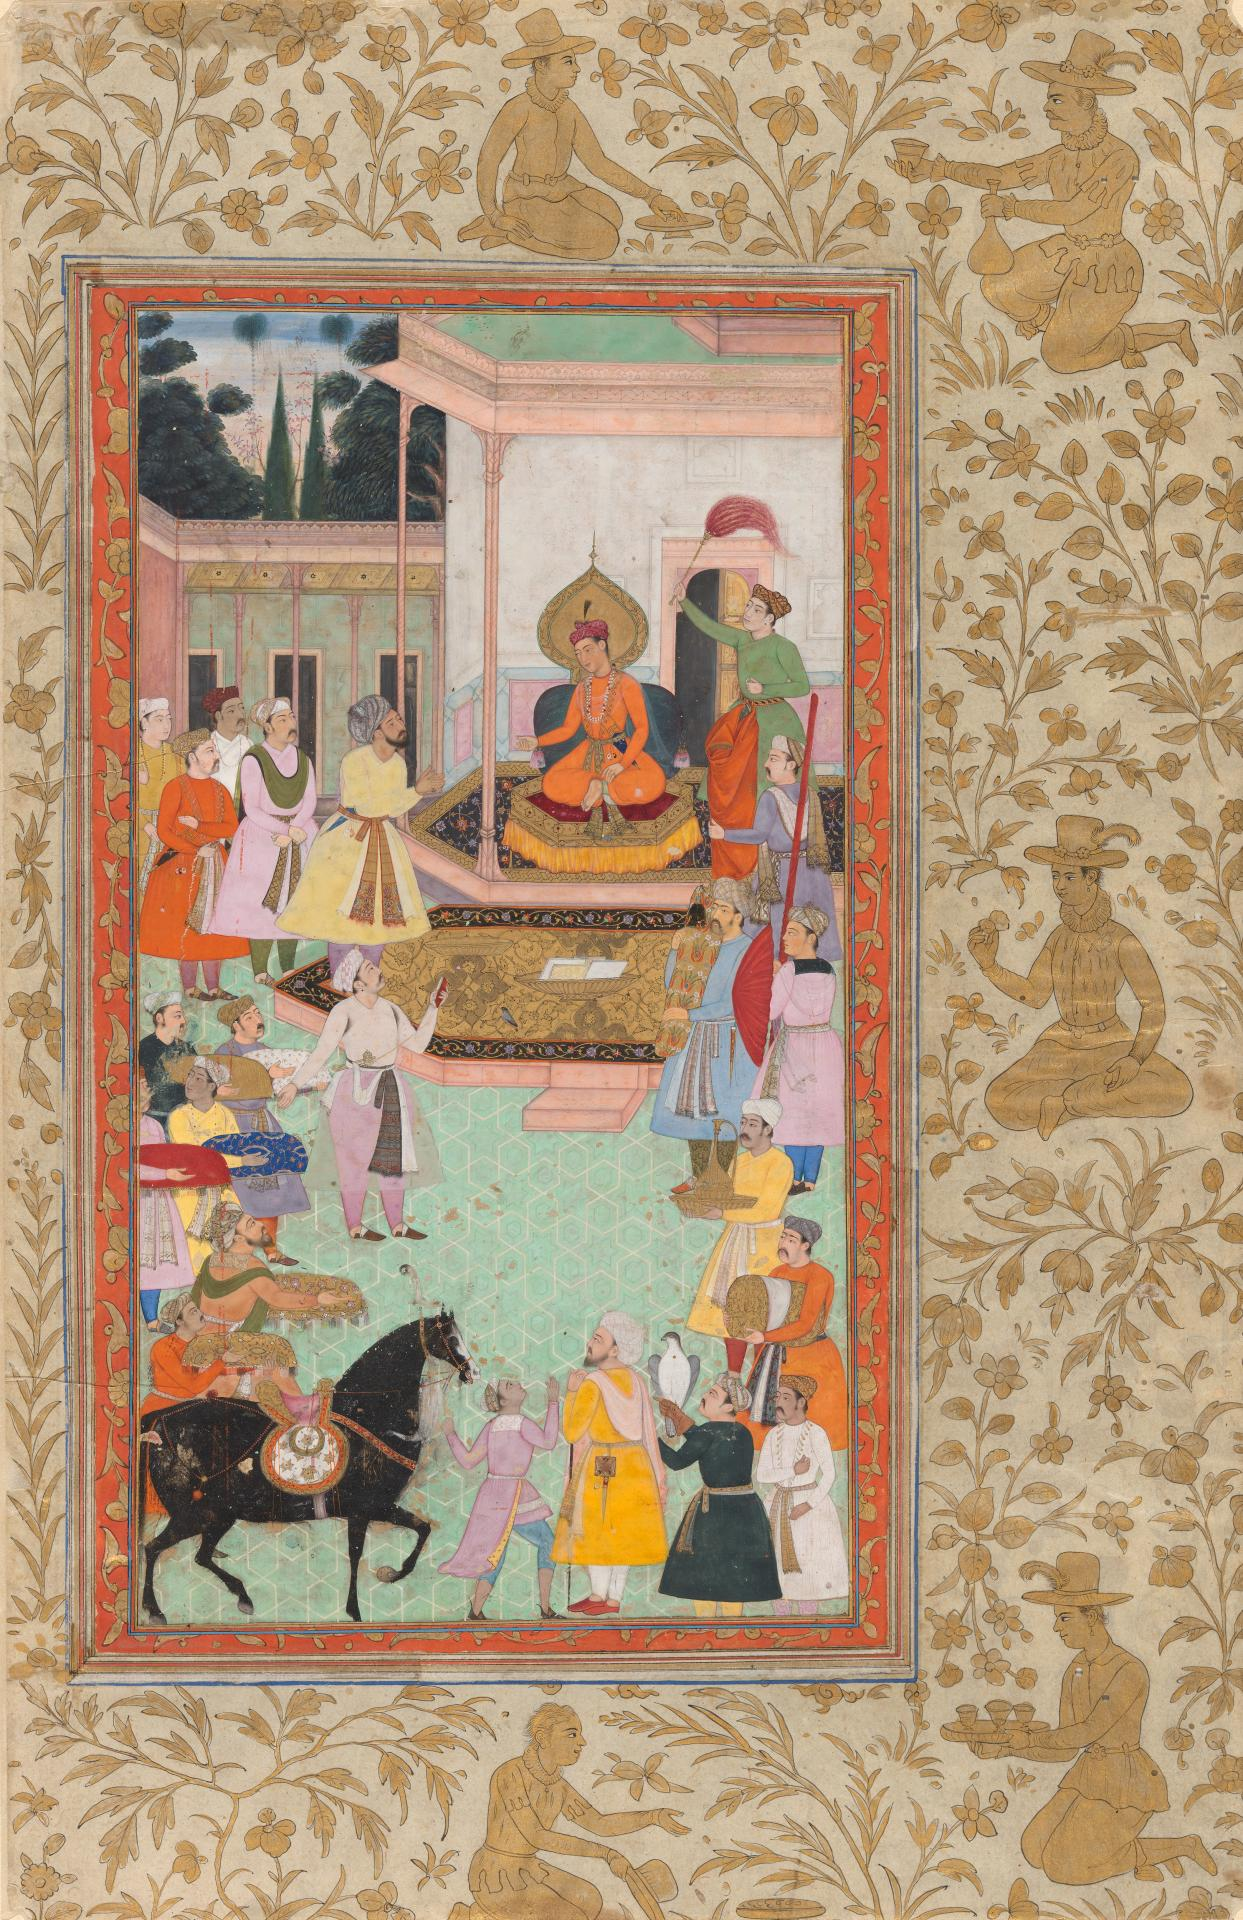 Akbar receiving gifts from his ministers from the Akbarnama